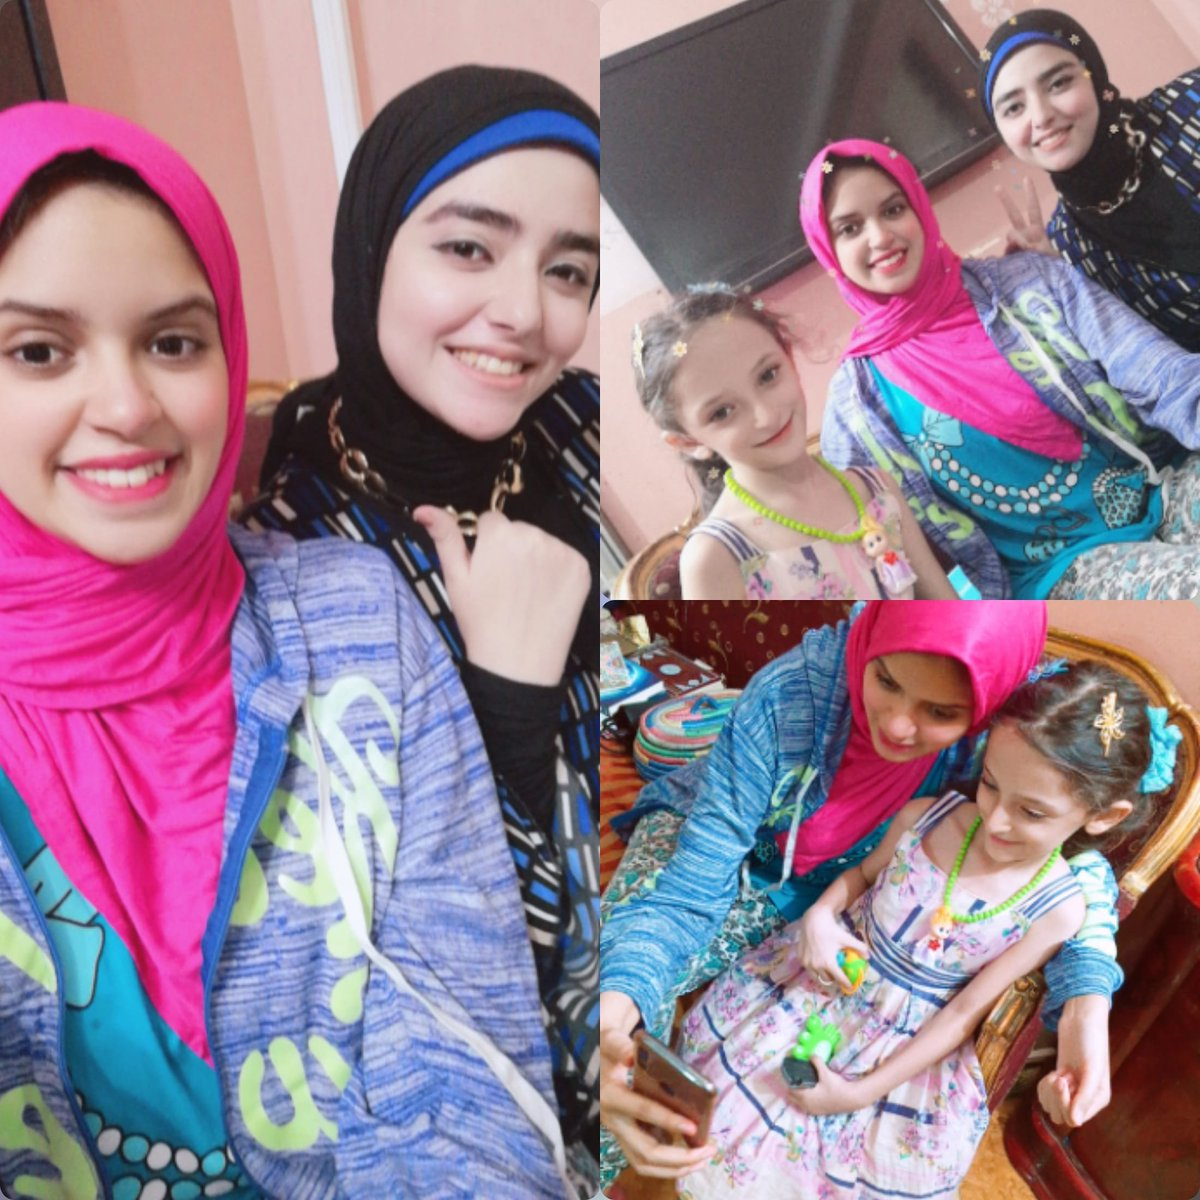 My princess❤️😍 amira there are no enough words can describe how the day so much beautiful to me and my Sis💗thank you about all thing you give it to me😍 It was a fun day😂 I hope it will repeat again.💜 #lovely #mylife  #smile #happy #cute #myprincess #friends #mysister #funday https://t.co/2RQbqdzfsM